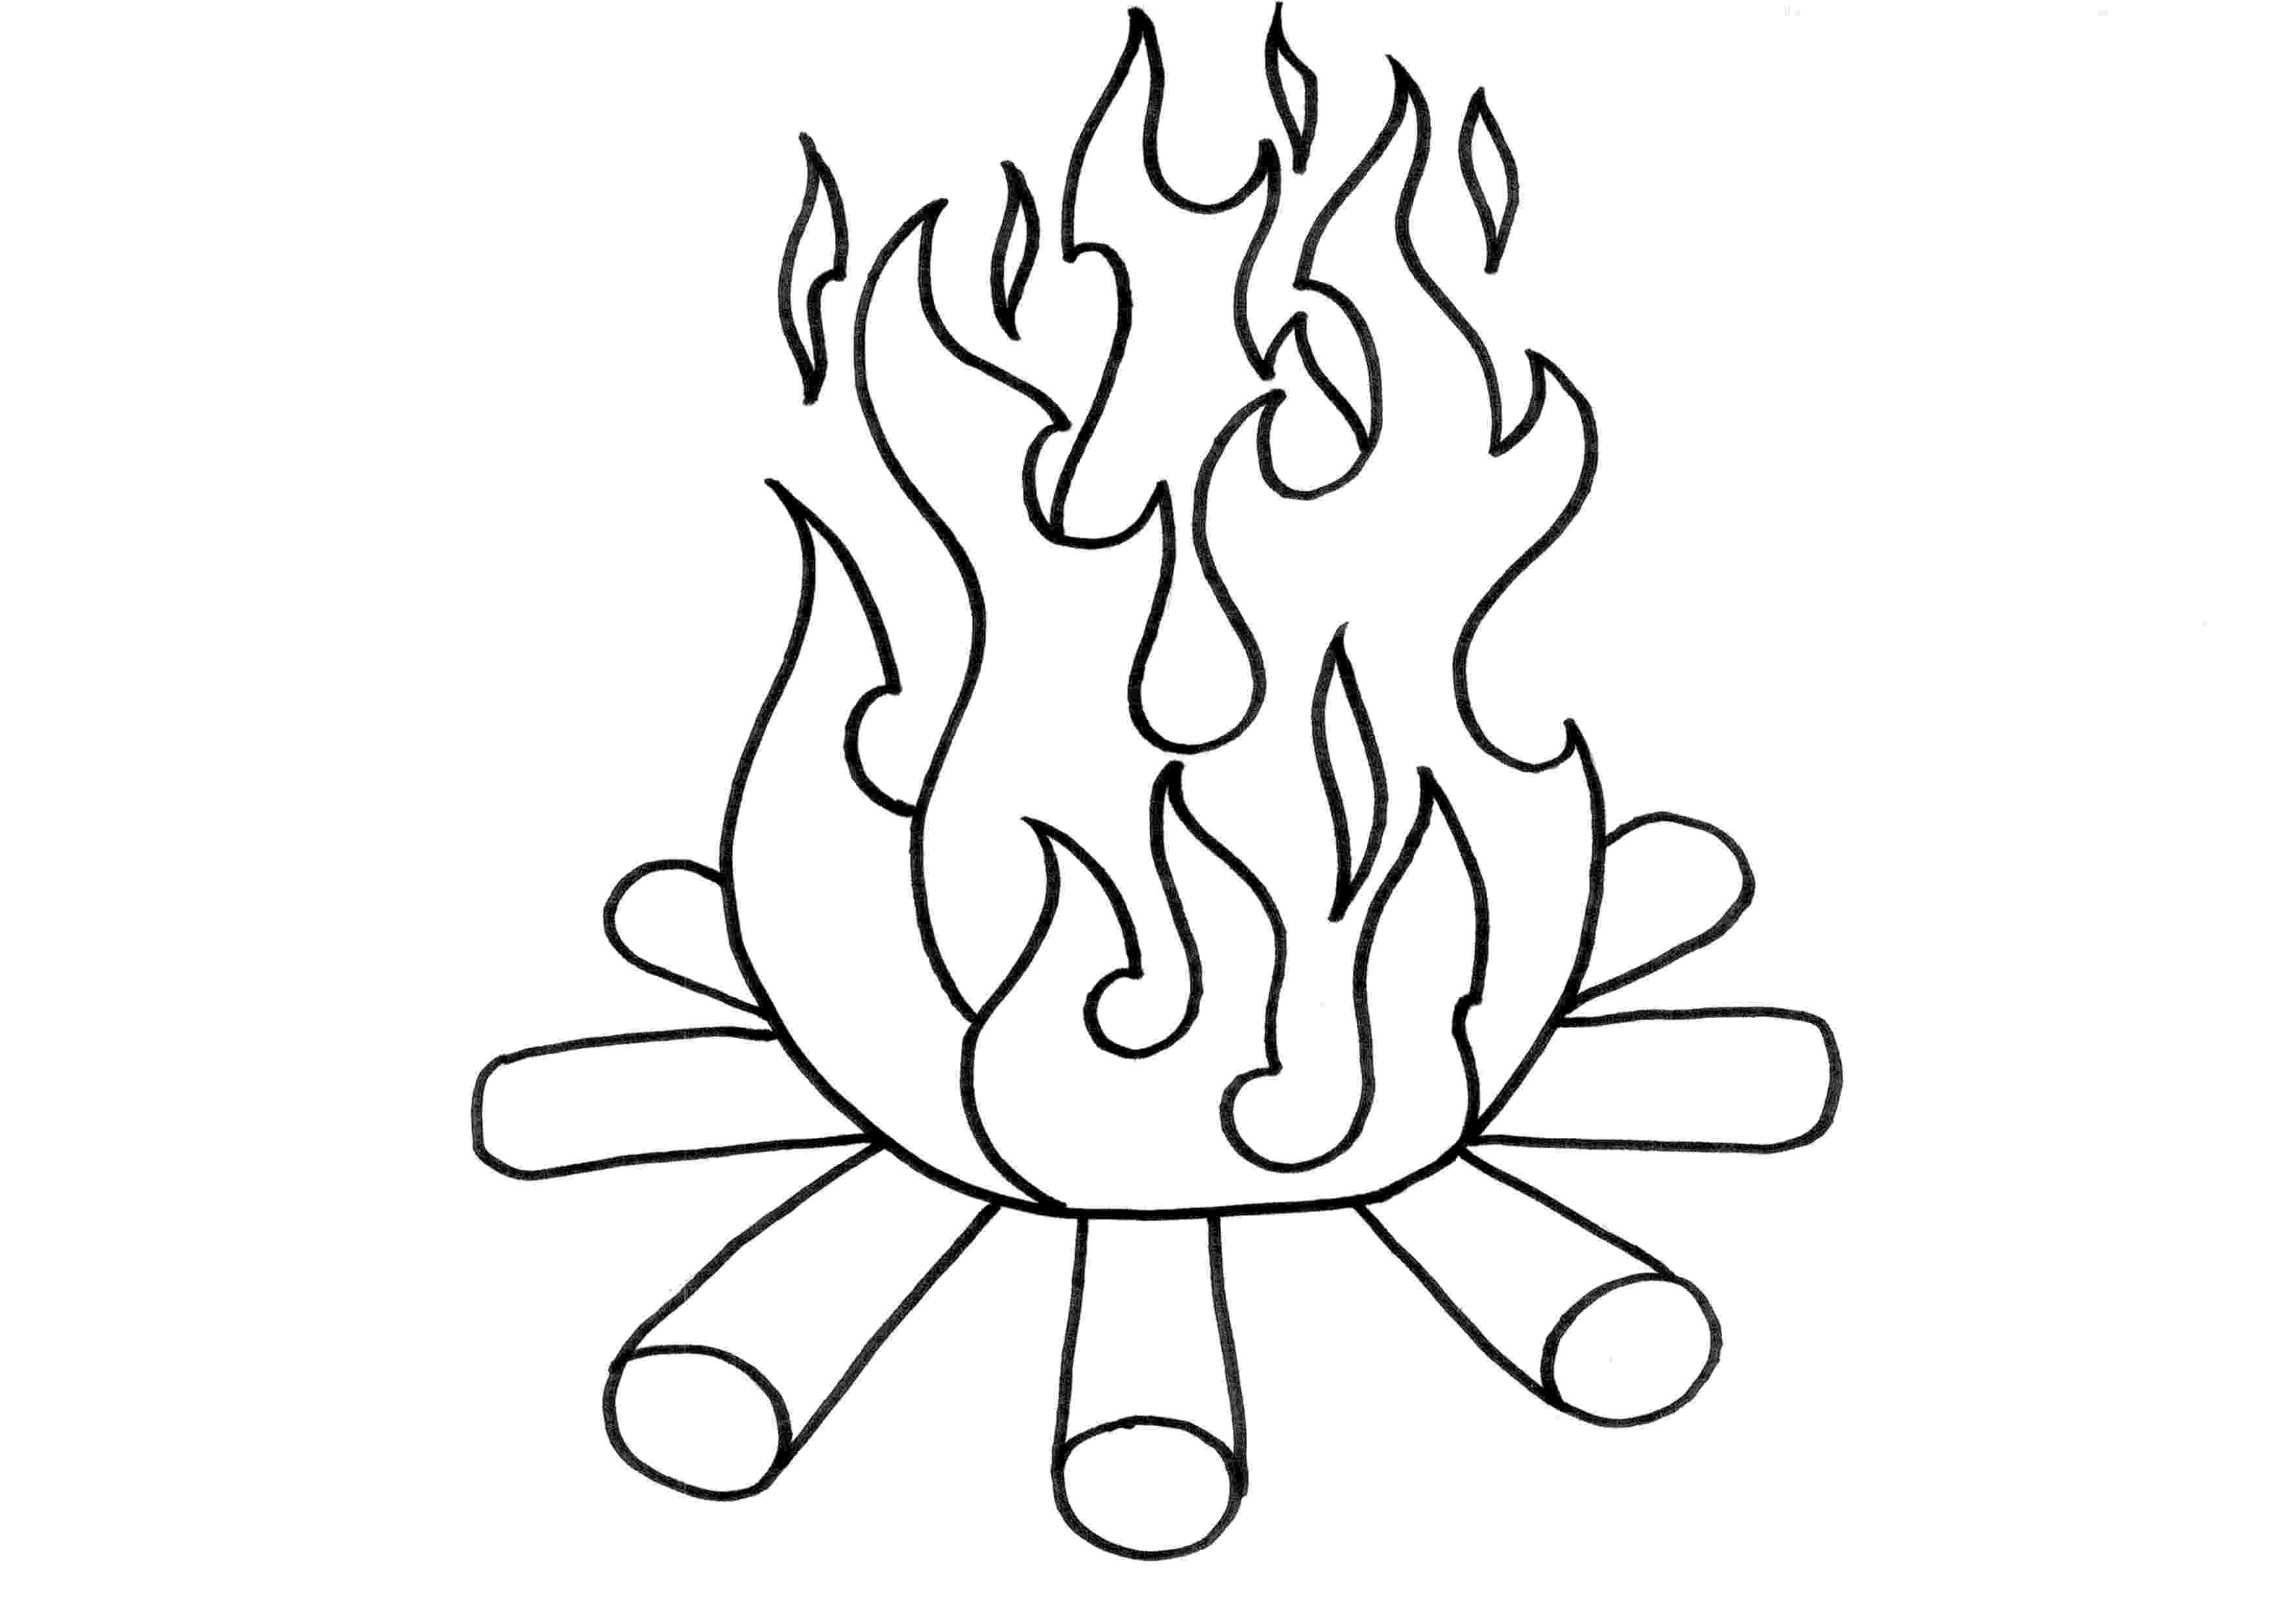 flames coloring pages how to draw a flame step by step stuff pop culture flames coloring pages